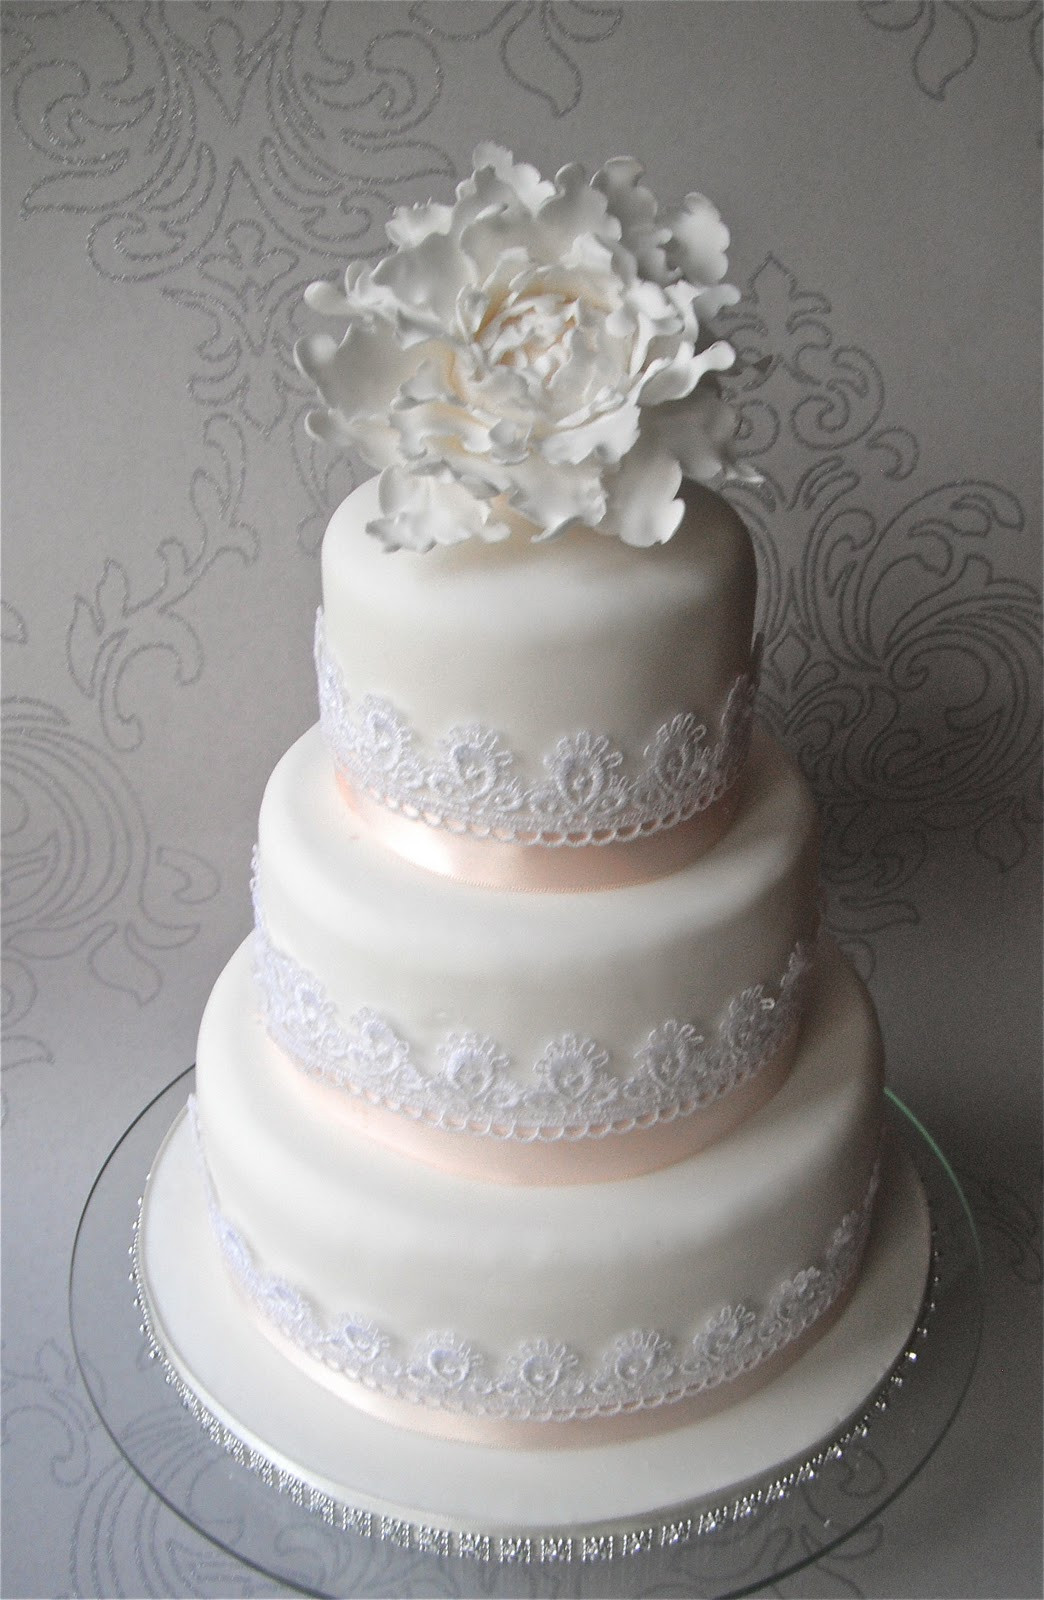 Pics Of Wedding Cakes  Wedding Cakes meandyoulookbook